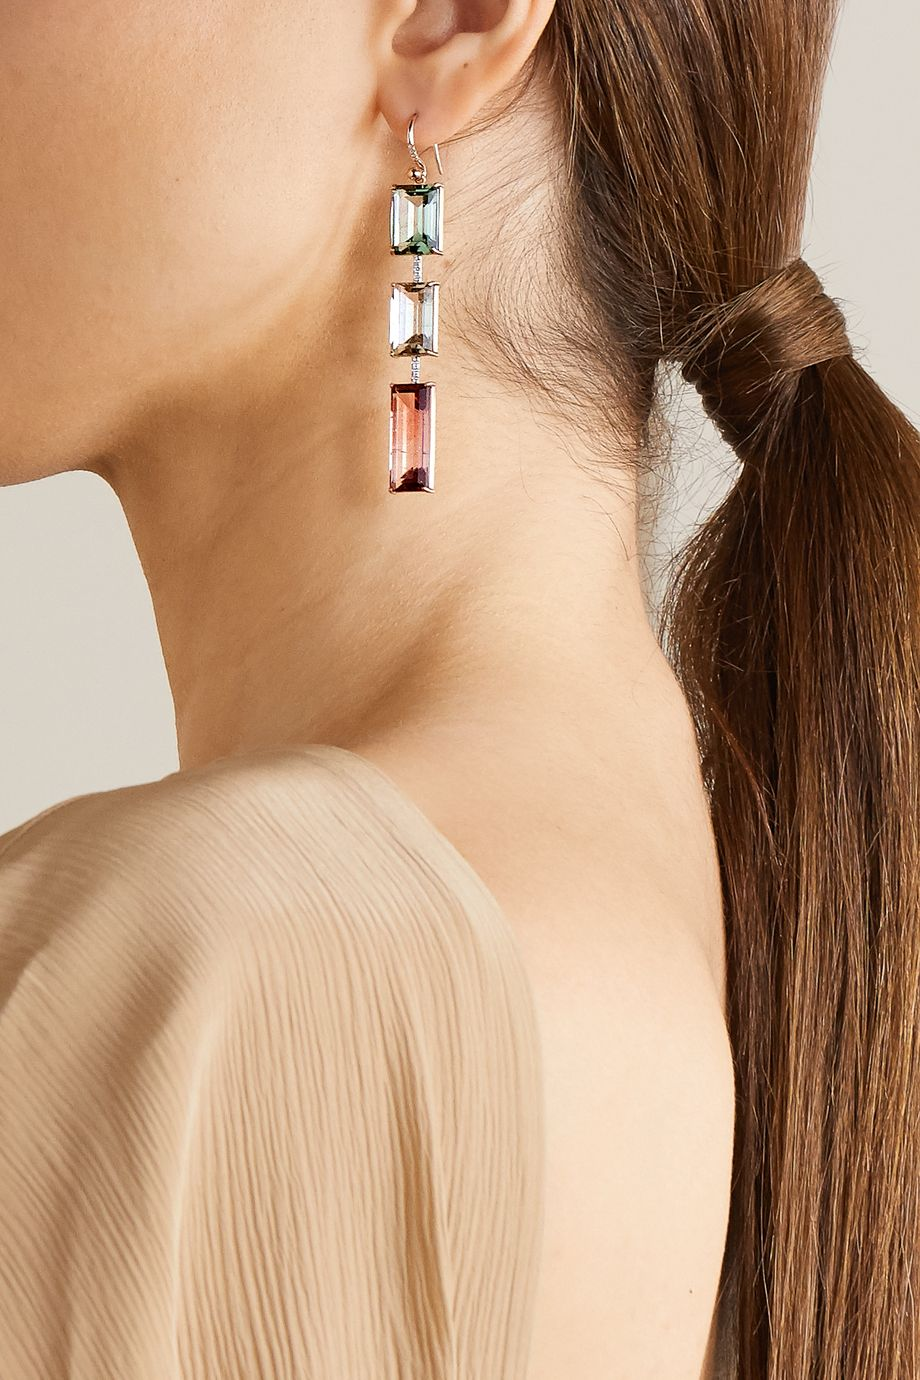 Irene Neuwirth Gemmy Gem 18-karat rose gold, tourmaline and diamond earrings